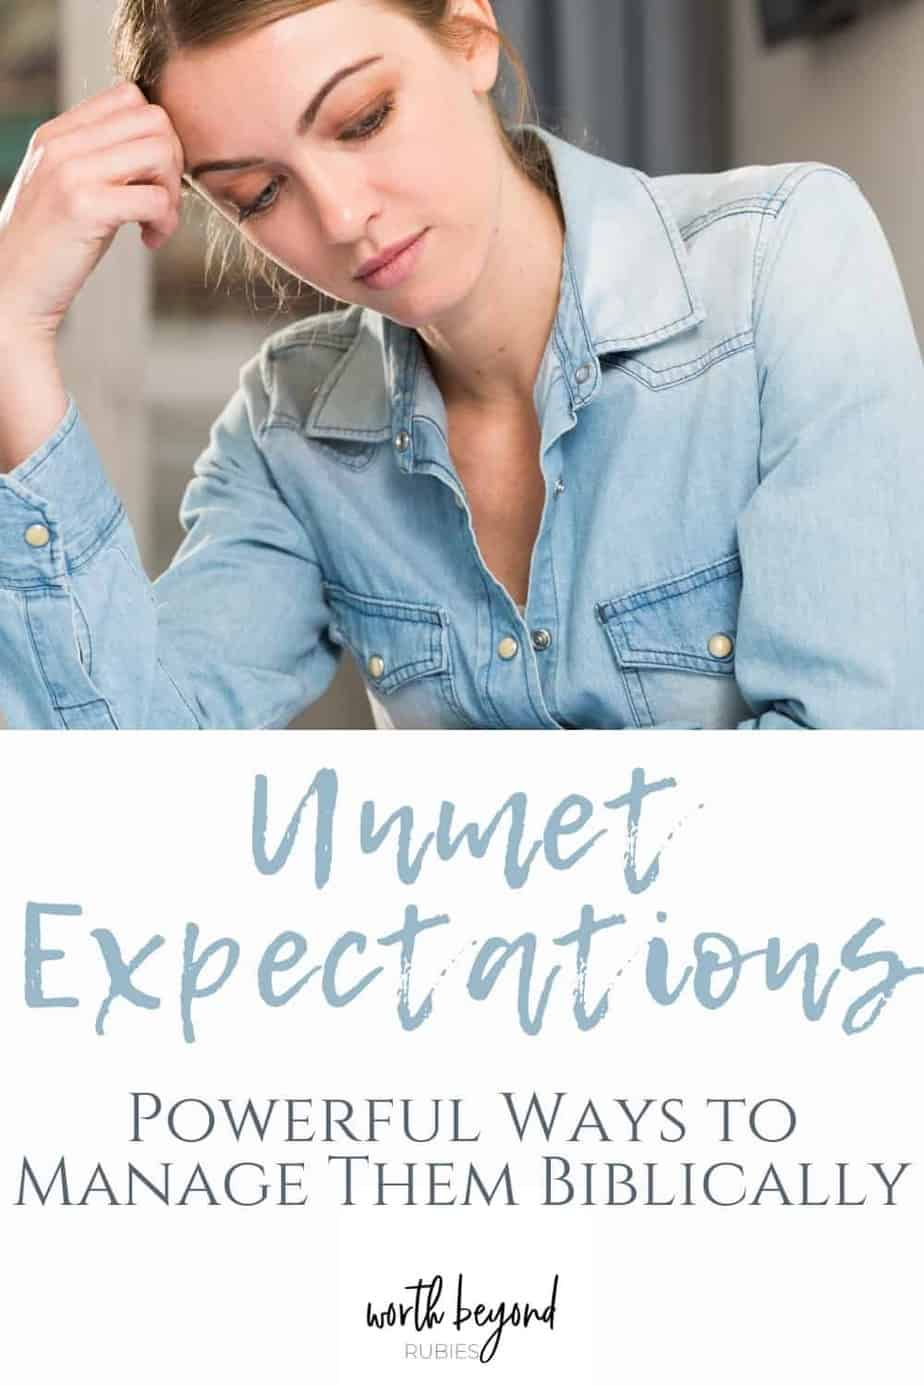 Disappointed woman sitting at table - text overlay that says Unmet Expectations - Powerful Ways to Manage Them Biblically